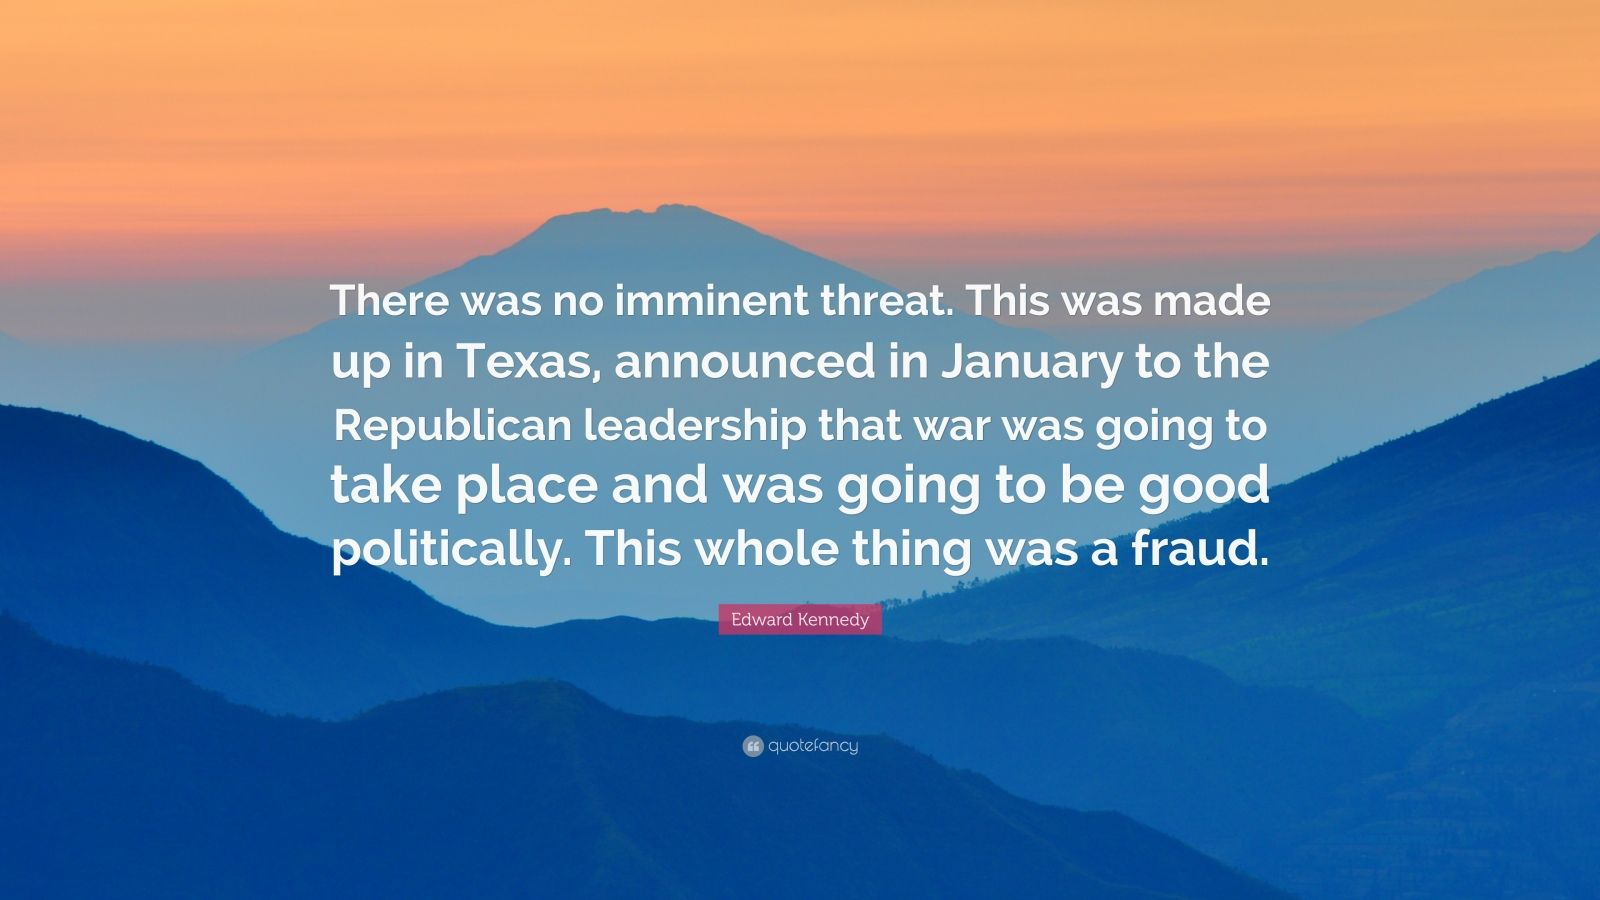 """Edward Kennedy Quote: """"There was no imminent threat. This was made up in Texas, announced in January to the Republican leadership that war was going to take place and was going to be good politically. This whole thing was a fraud."""""""